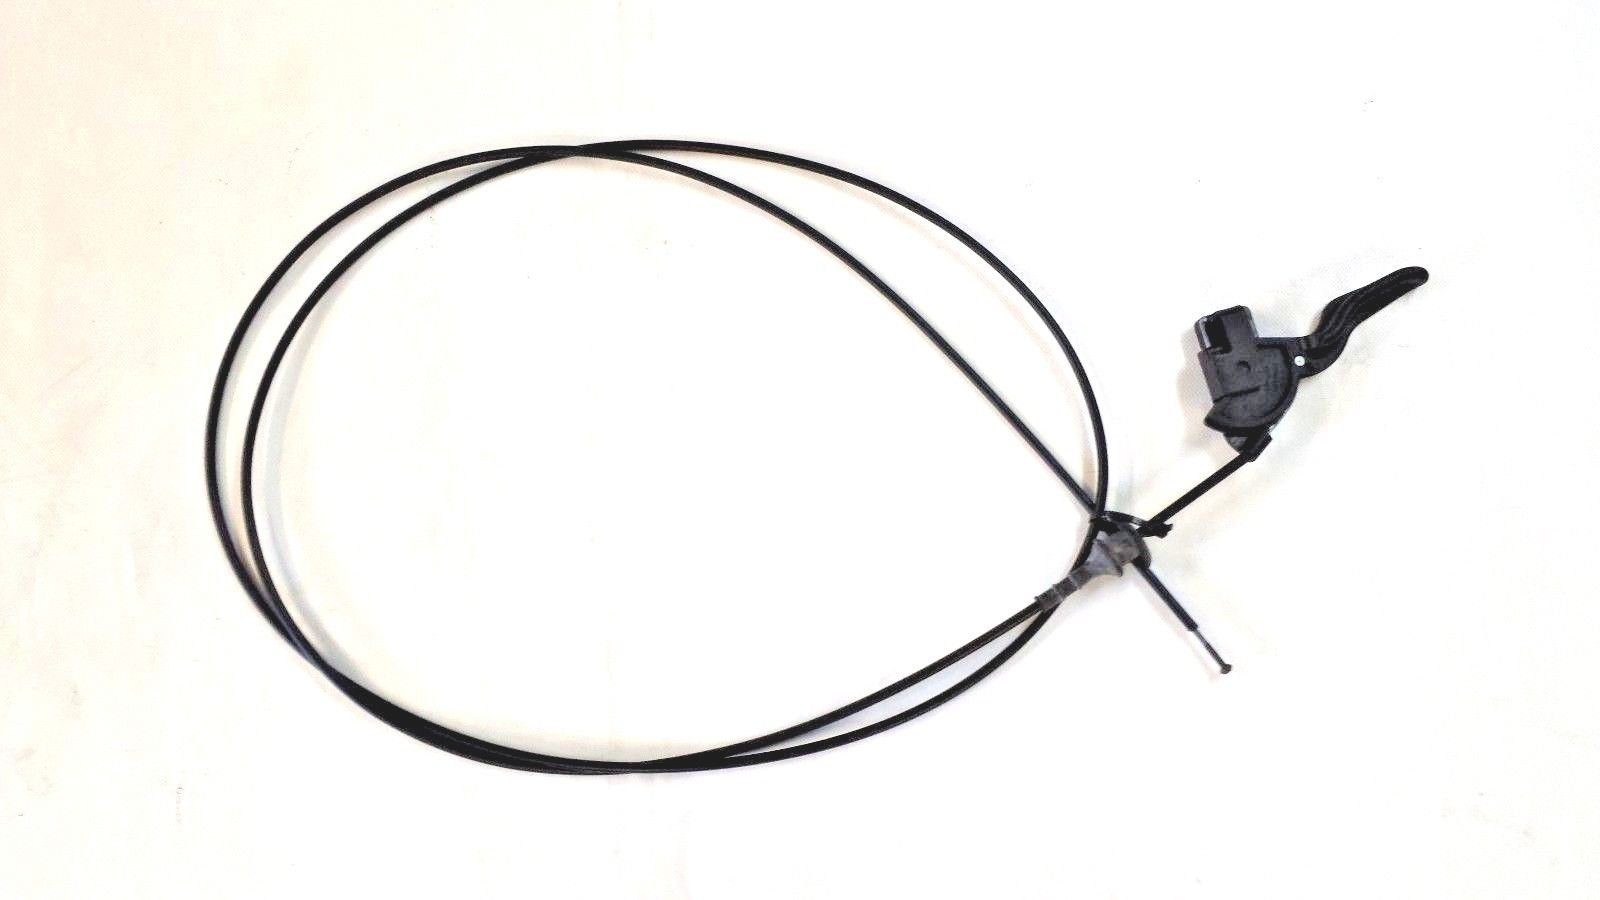 Vauxhall Meriva A (2003-2010) Bonnet Lock Release Cable & Handle New OE Part 93320048